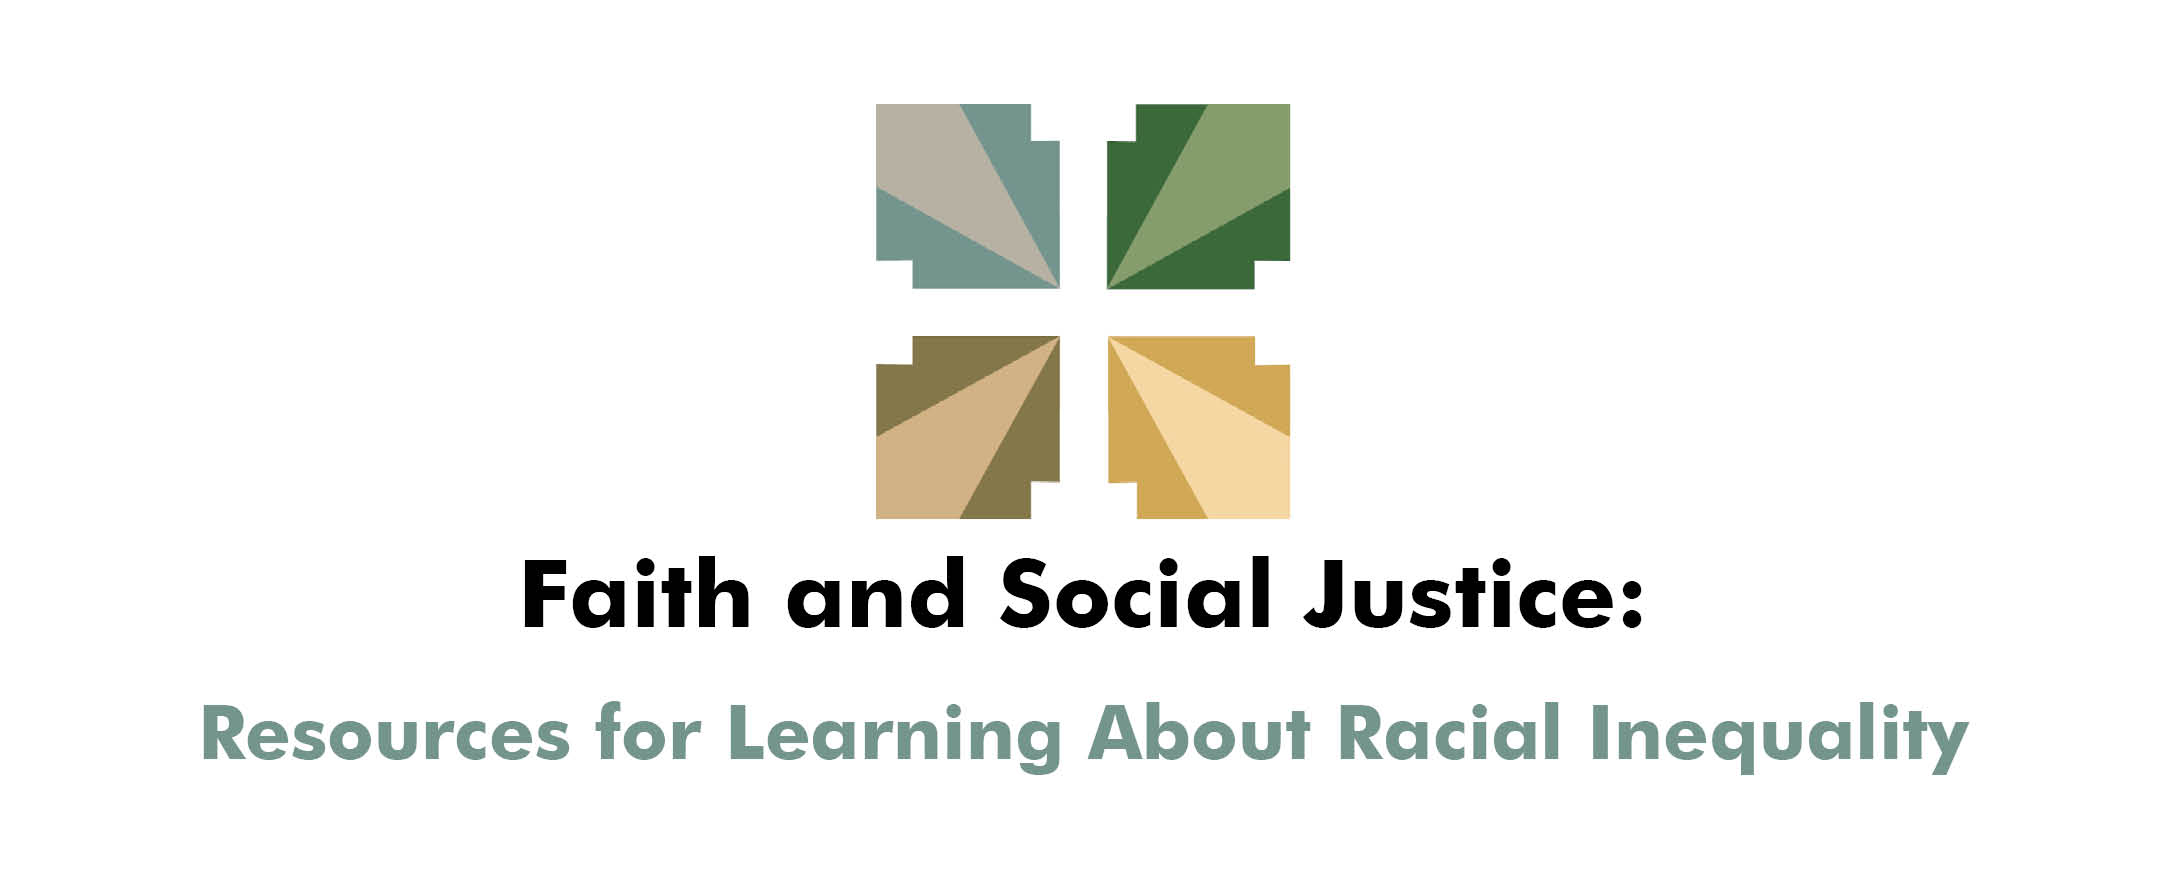 Faith and Social Justice web banner